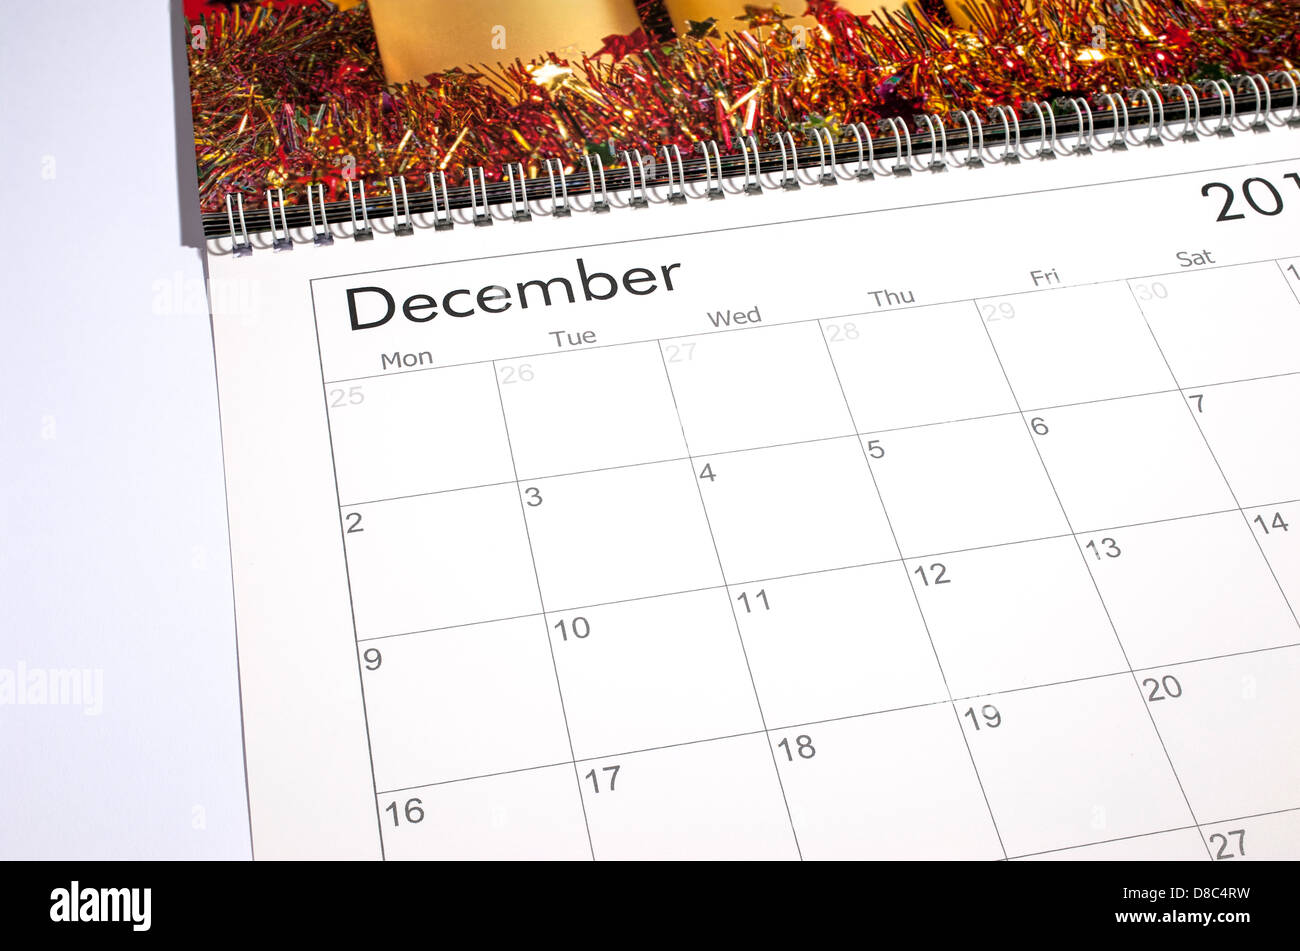 Blank page calendrier - Décembre 2013 Photo Stock